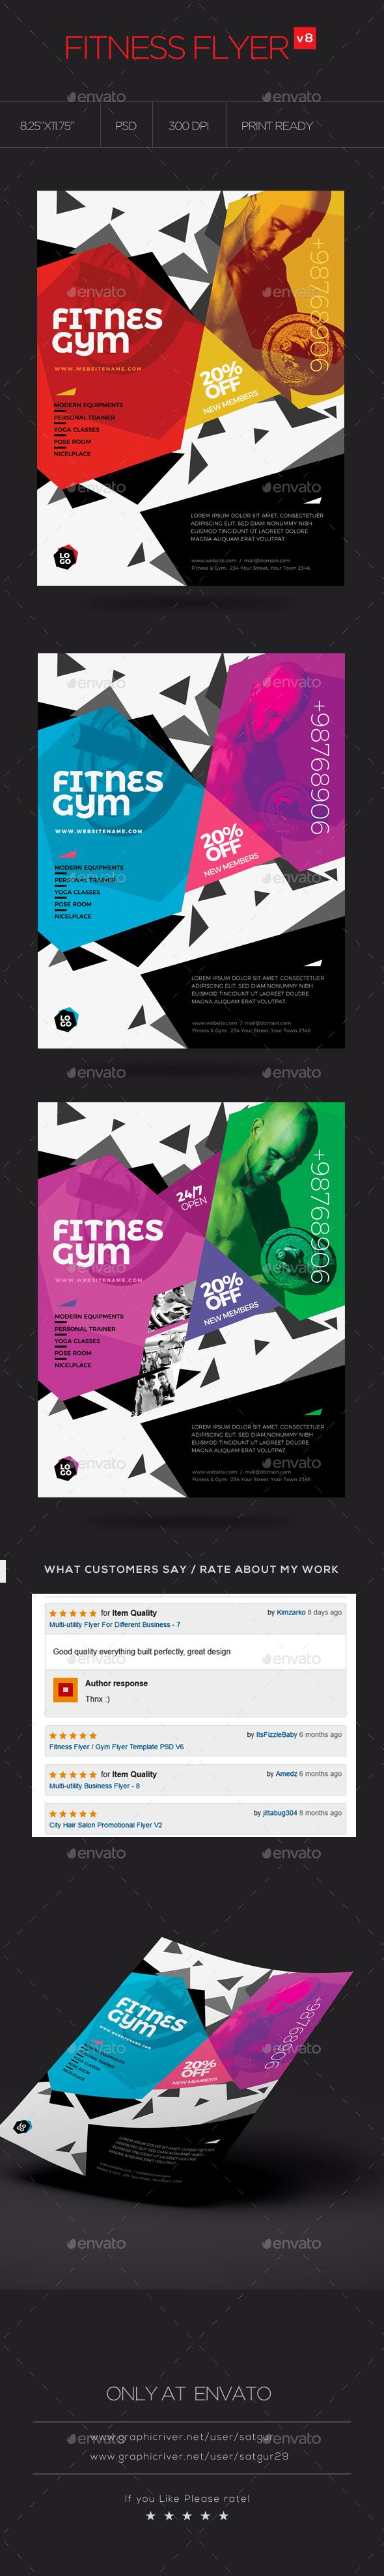 Fitness Flyer  Gym Flyer V  Flyer Template Gym And Fonts